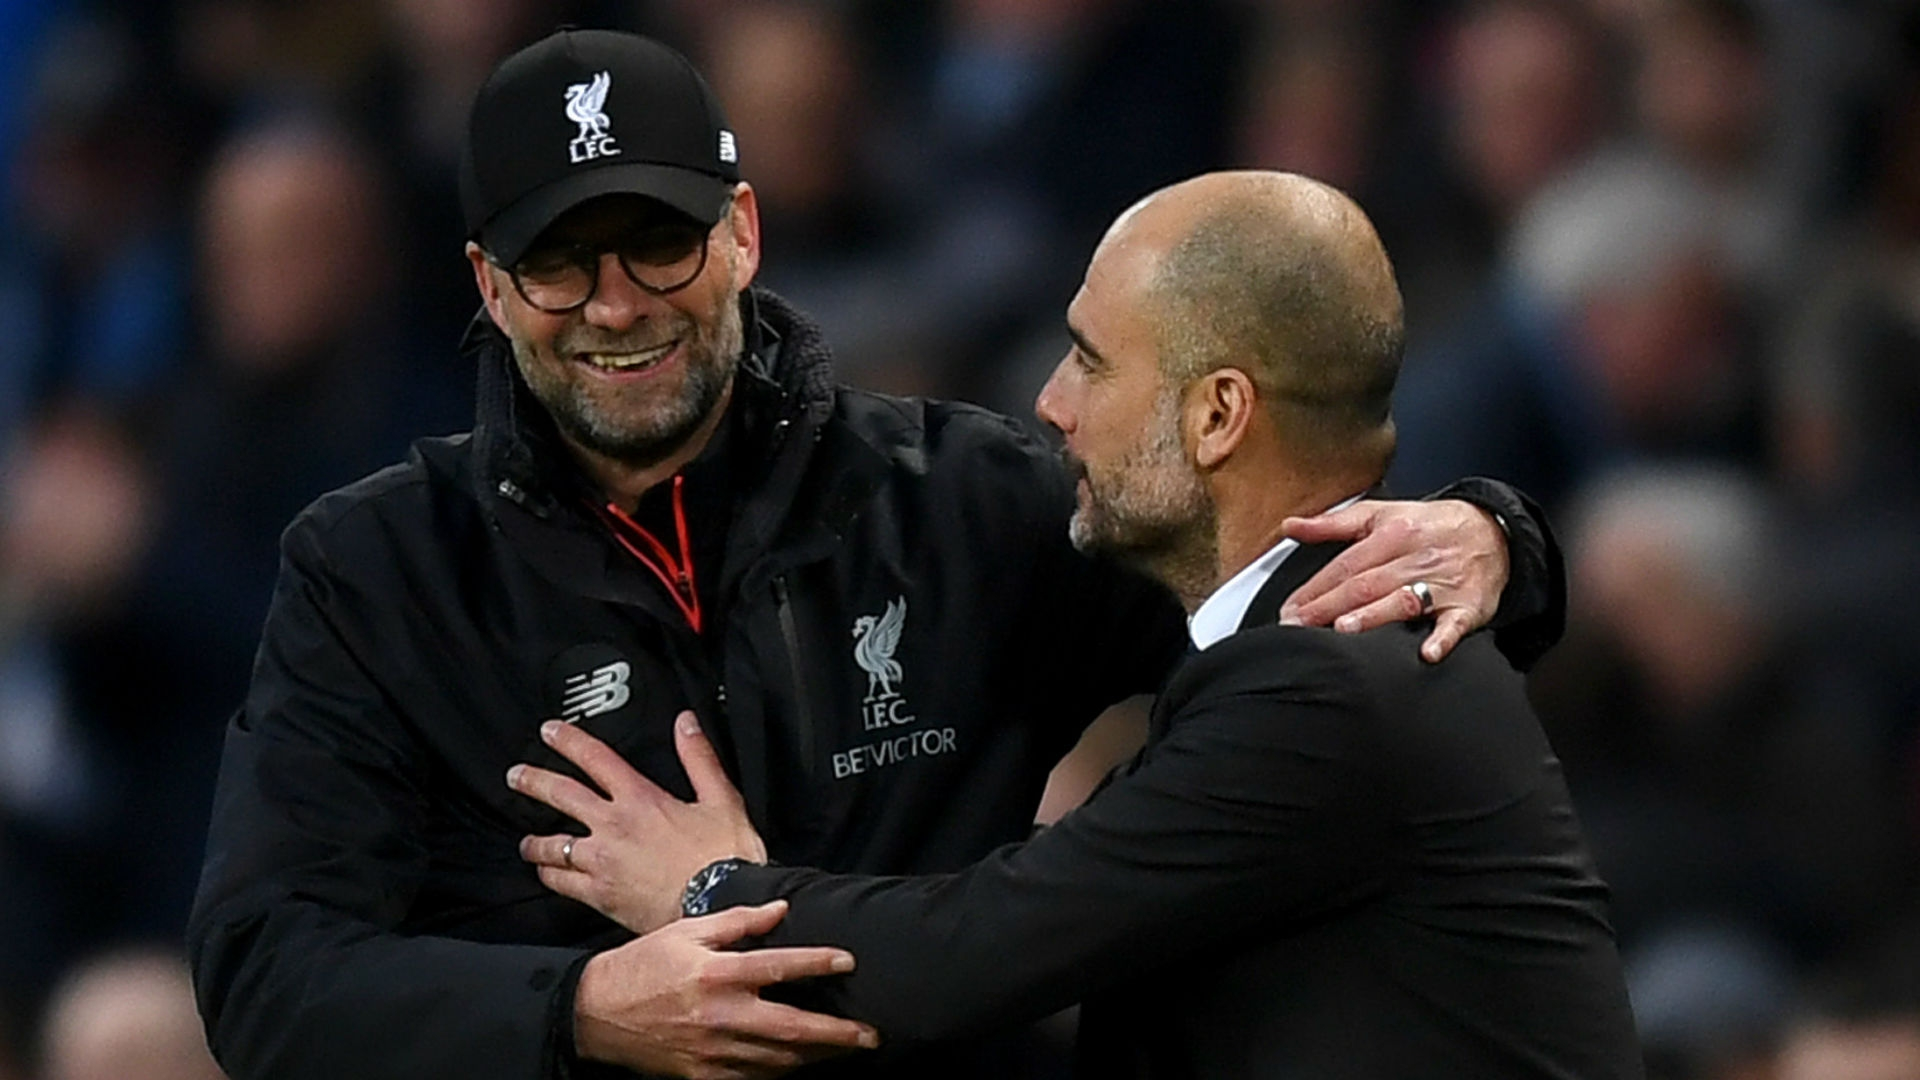 Klopp and Guardiola, managers of Liverpool and Manchester City